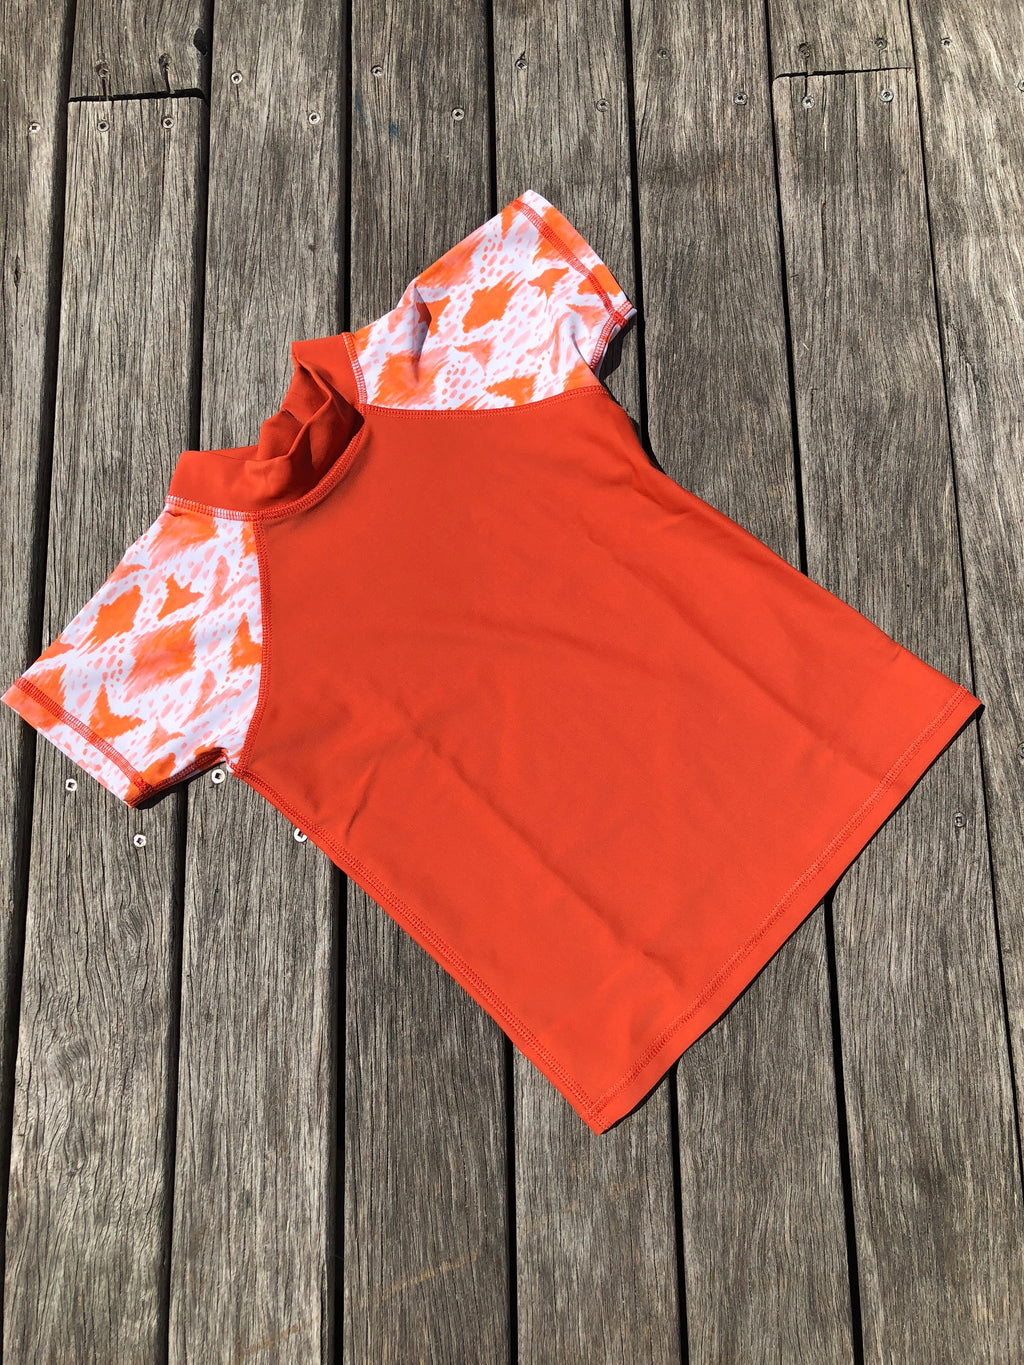 Boys Swim Shirt - Orange Ikat